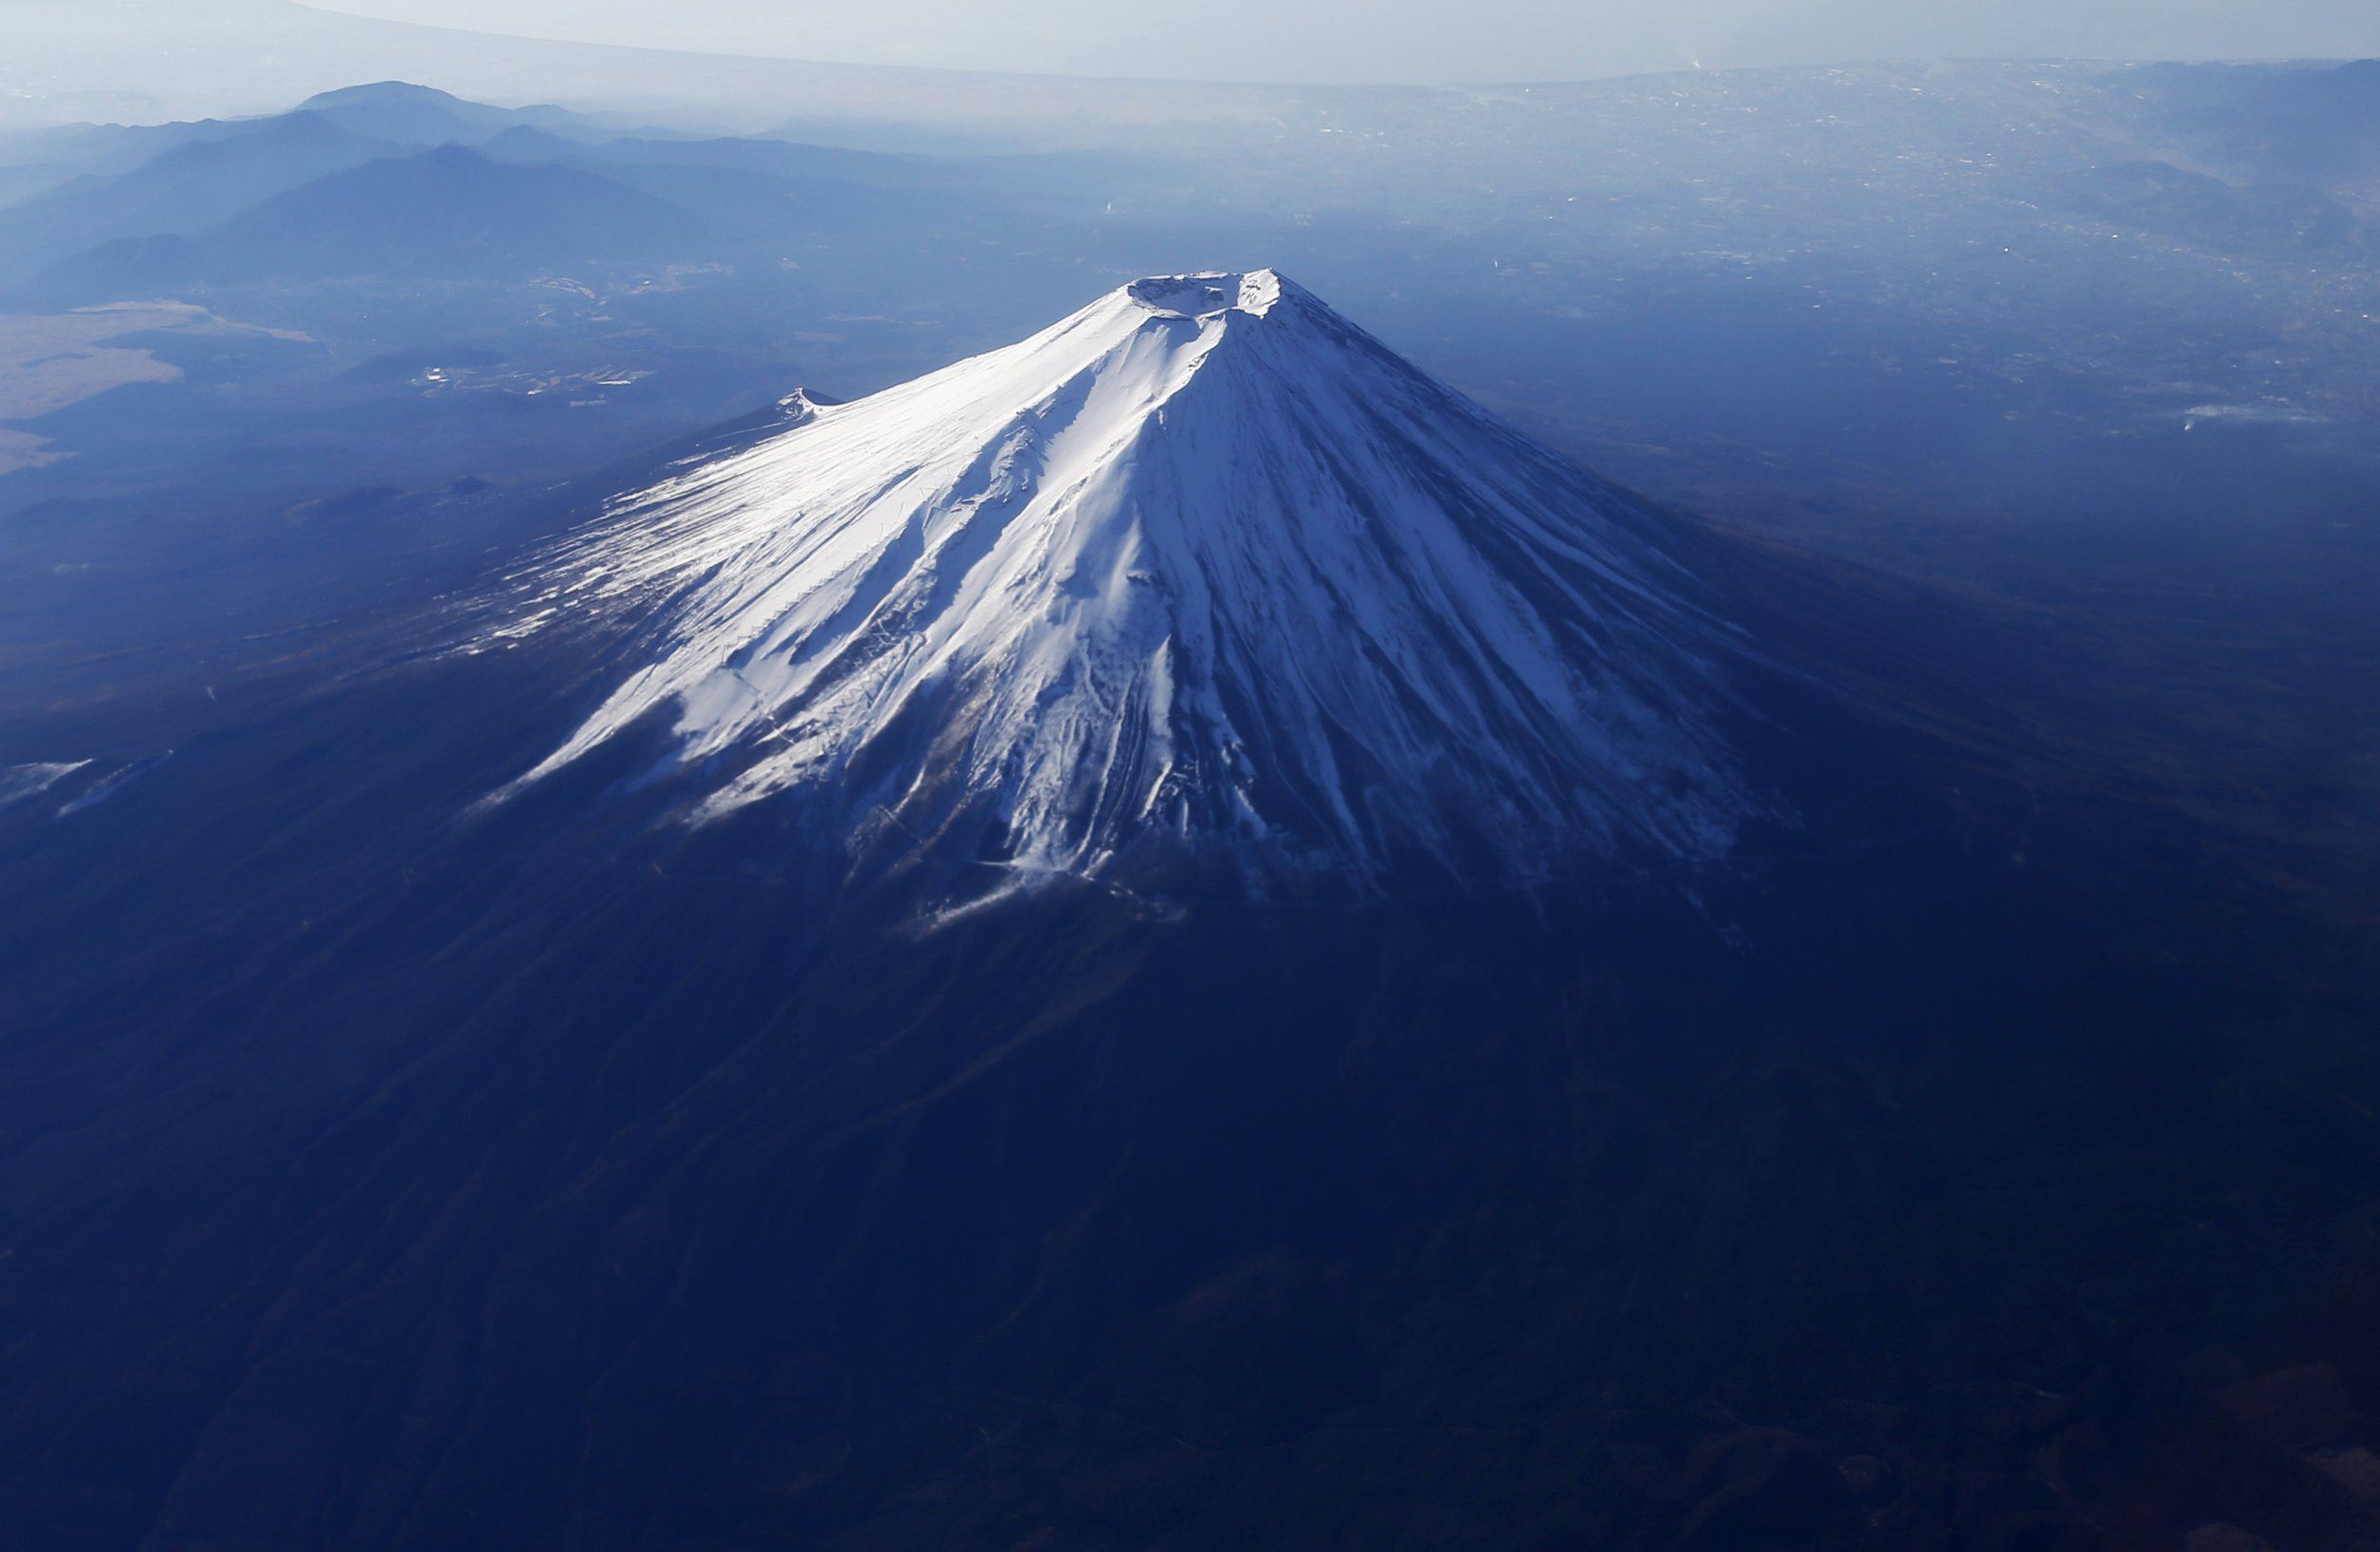 Bing Animated Wallpaper Mount Fuji Volcano Is In A Critical State New Study Warns